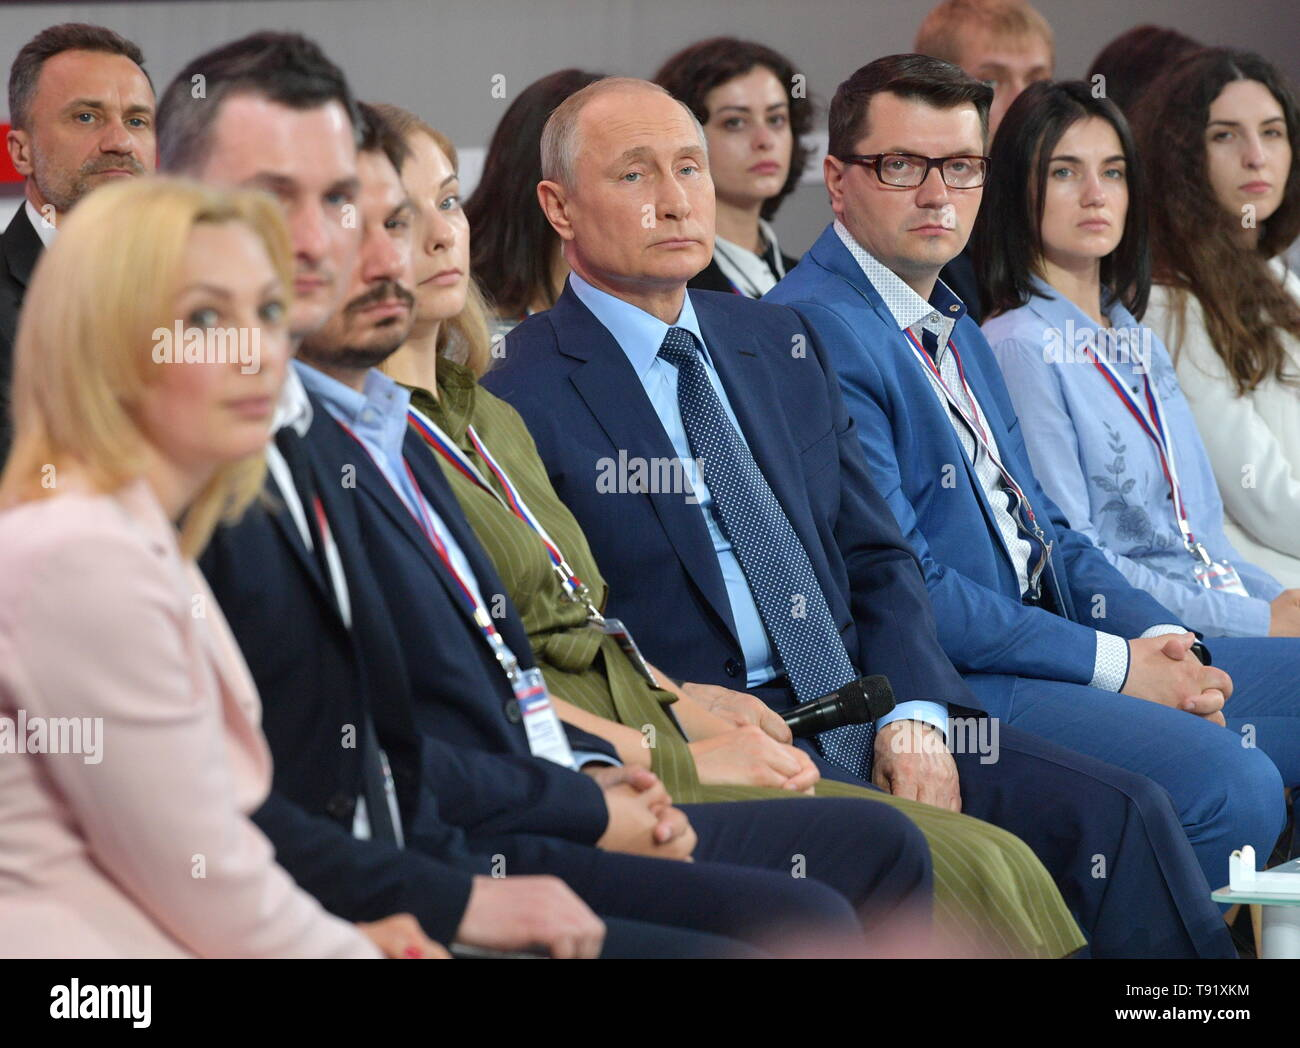 Sochi, Russia. 16th May, 2019. SOCHI, RUSSIA - MAY 16, 2019: Russia's President Vladimir Putin (C) attends the plenary meeting at the 6th Independent Local and Regional Media Forum held by the All-Russian People's Front. Pictured in this image is also Deputy State Duma Chairperson Olga Timfeyeva (L). Alexei Druzhinin/Russian Presidential Press and Information Office/TASS Credit: ITAR-TASS News Agency/Alamy Live News - Stock Image